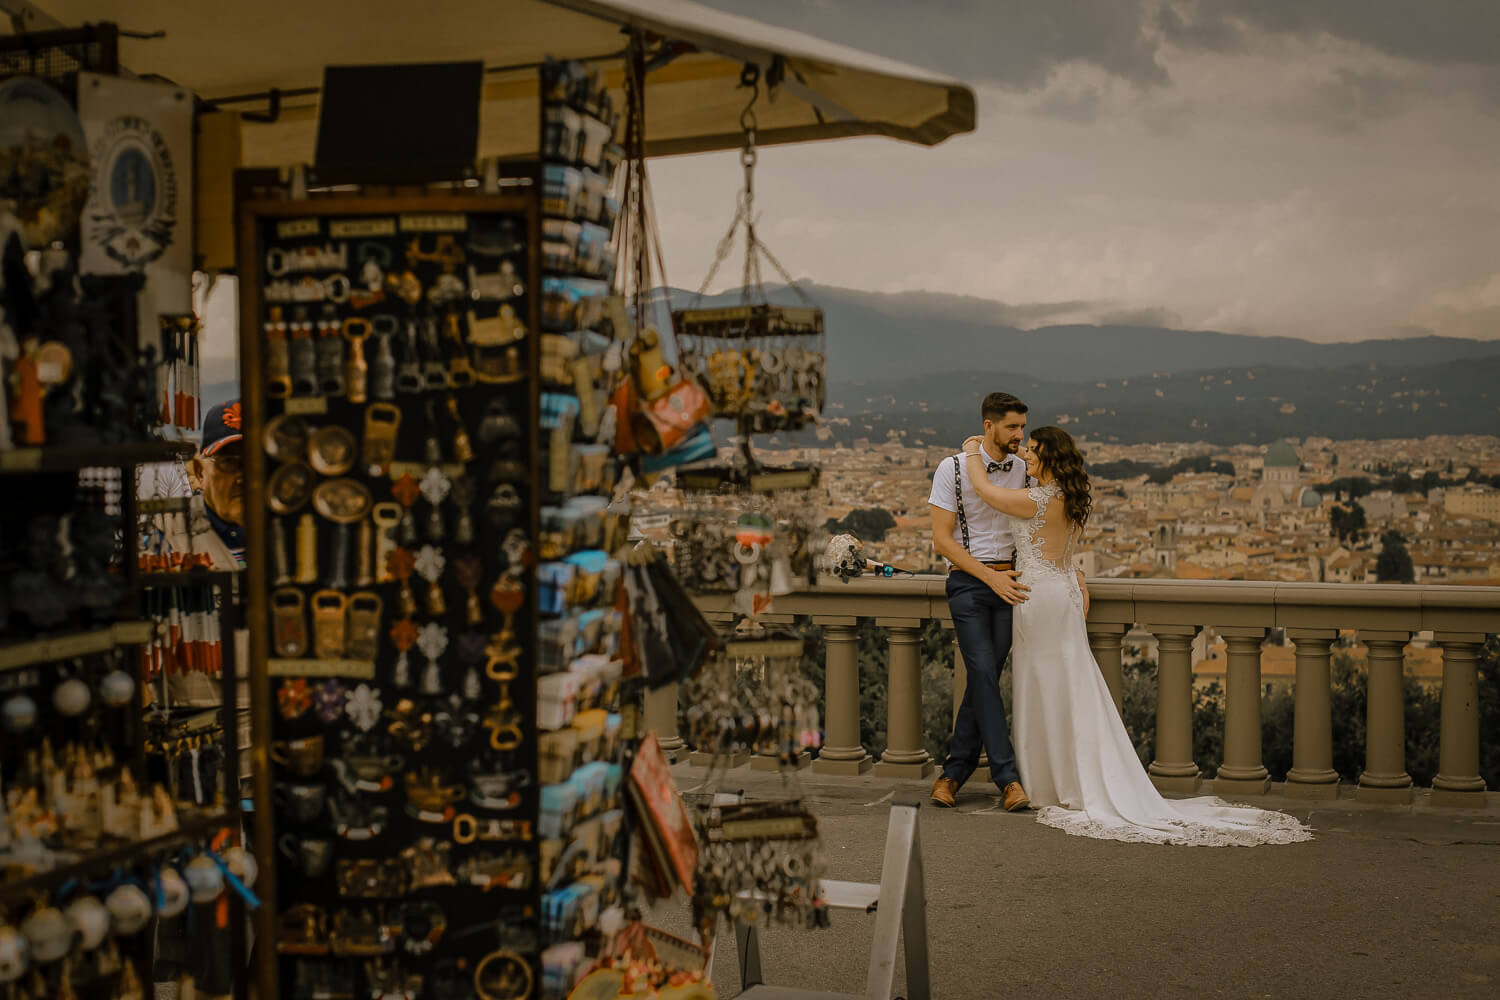 Florence souvenirs with bride and groom.